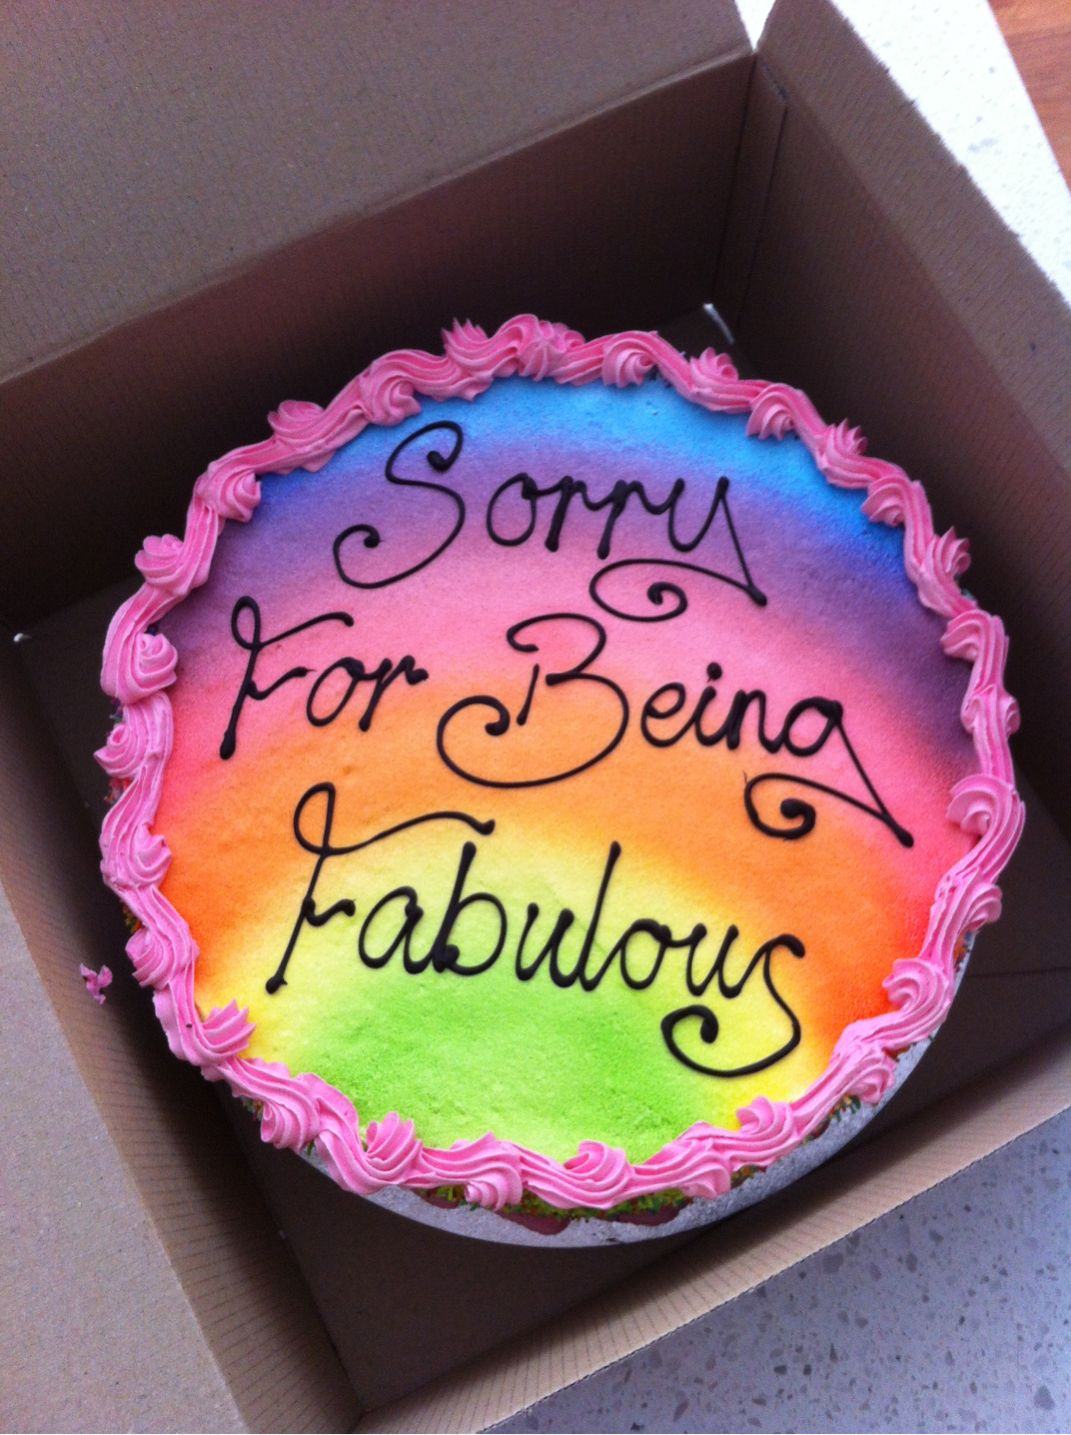 13 Brutally Honest Cakes Thoughts Percy jackson and Jackson